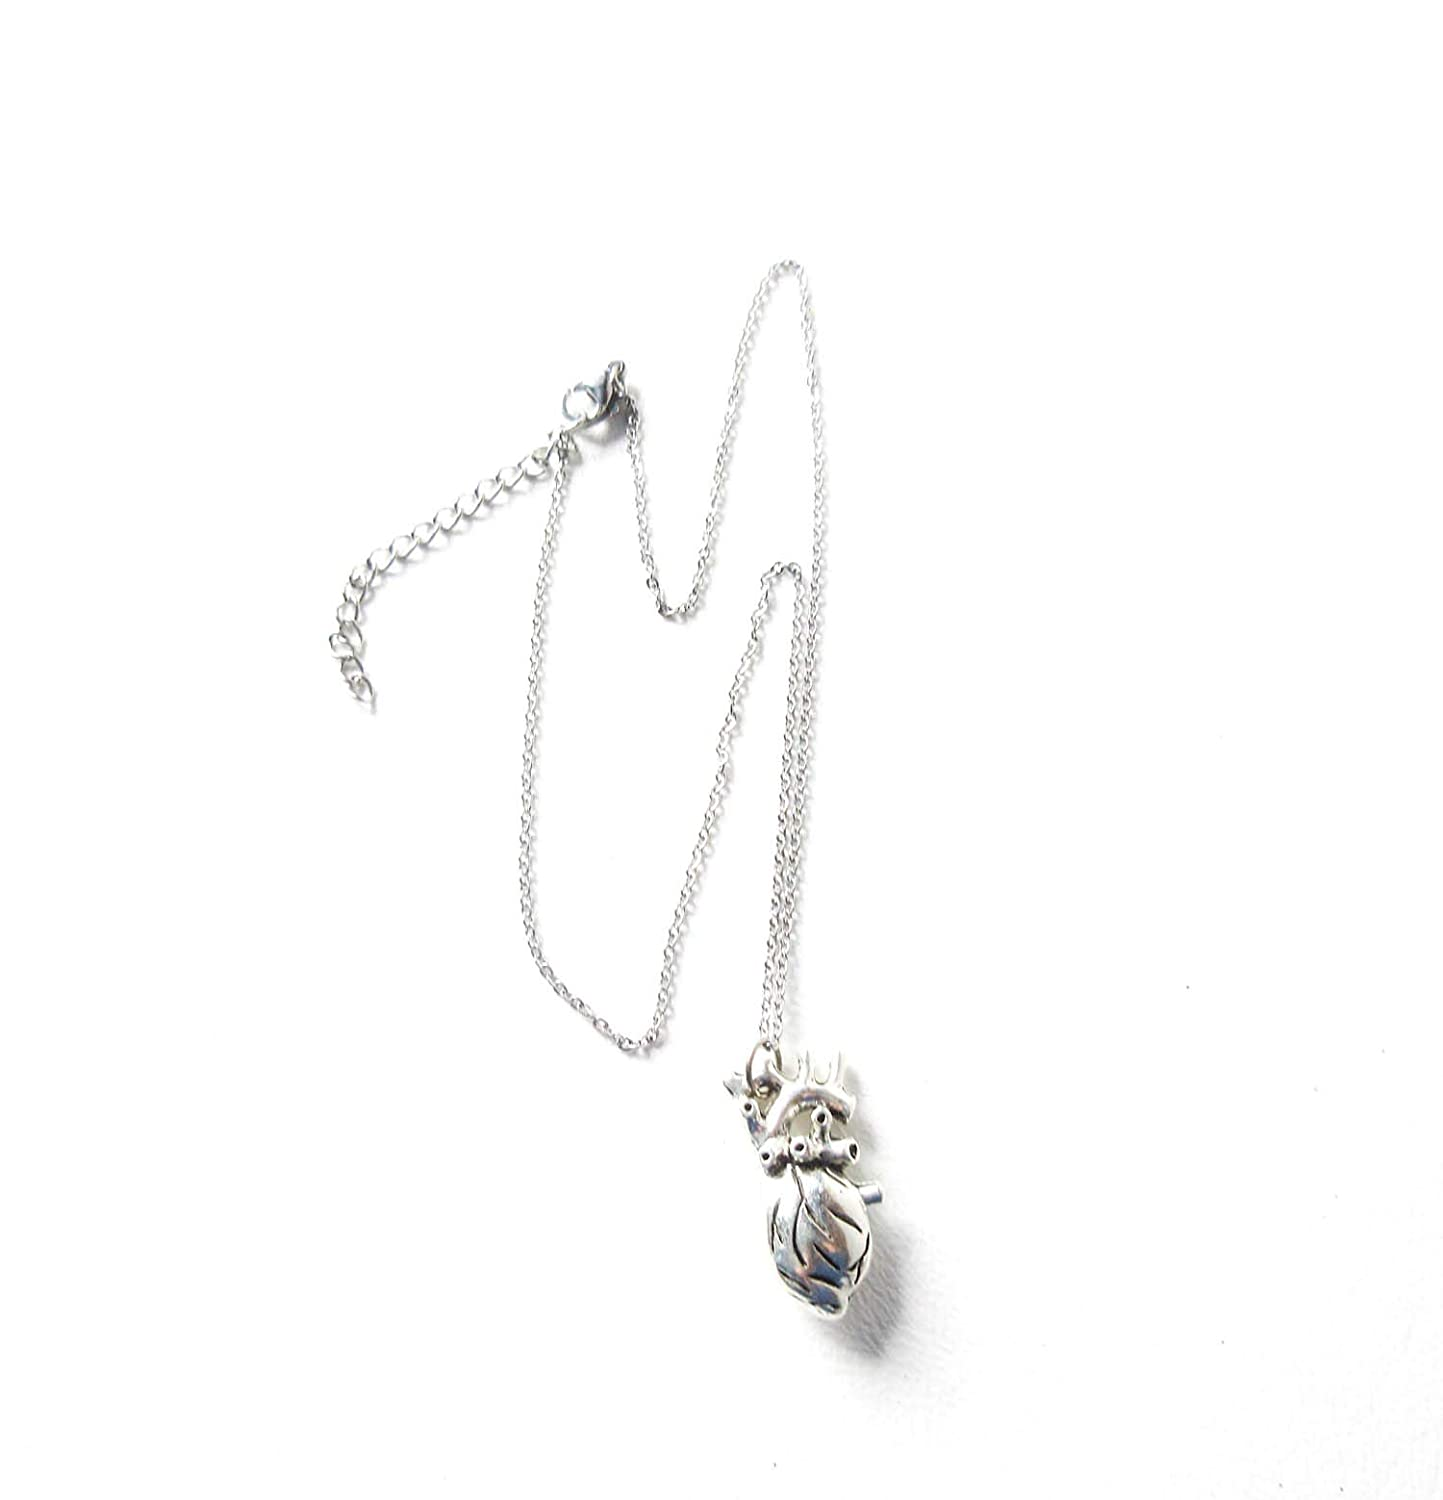 Anatomical Heart Necklace with Stainless Steel Chain 3D Jewelry